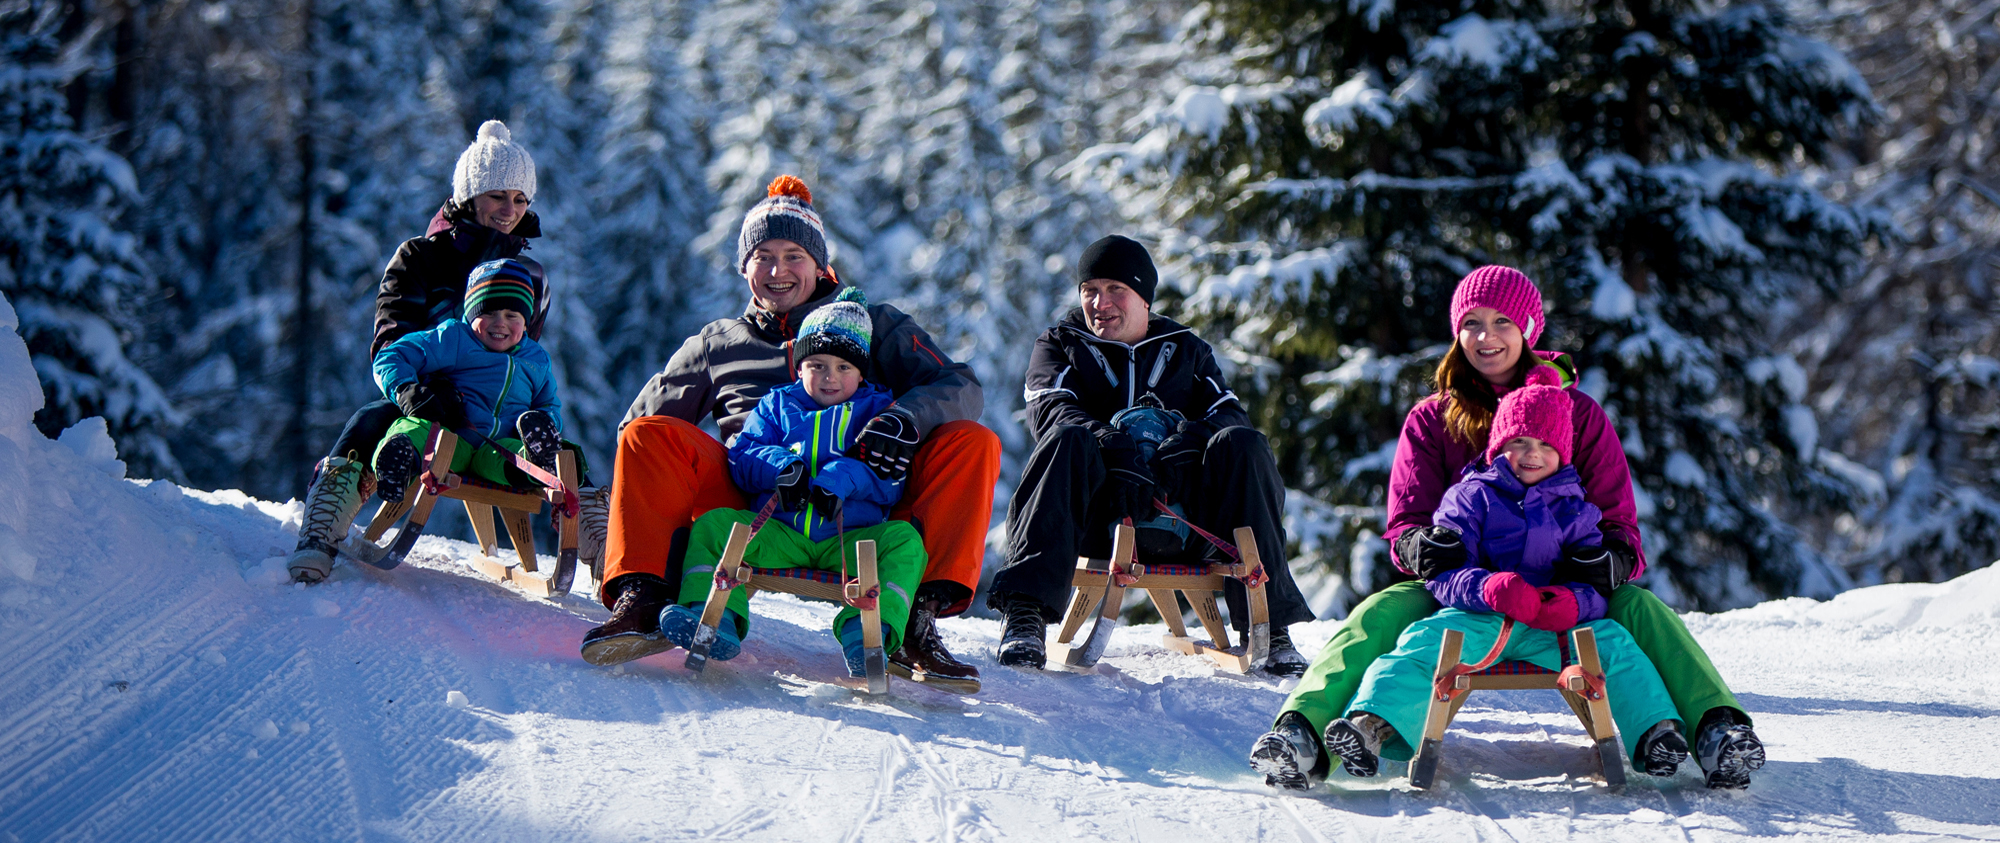 Familienurlaub im Winter in Filzmoos in Ski amadé